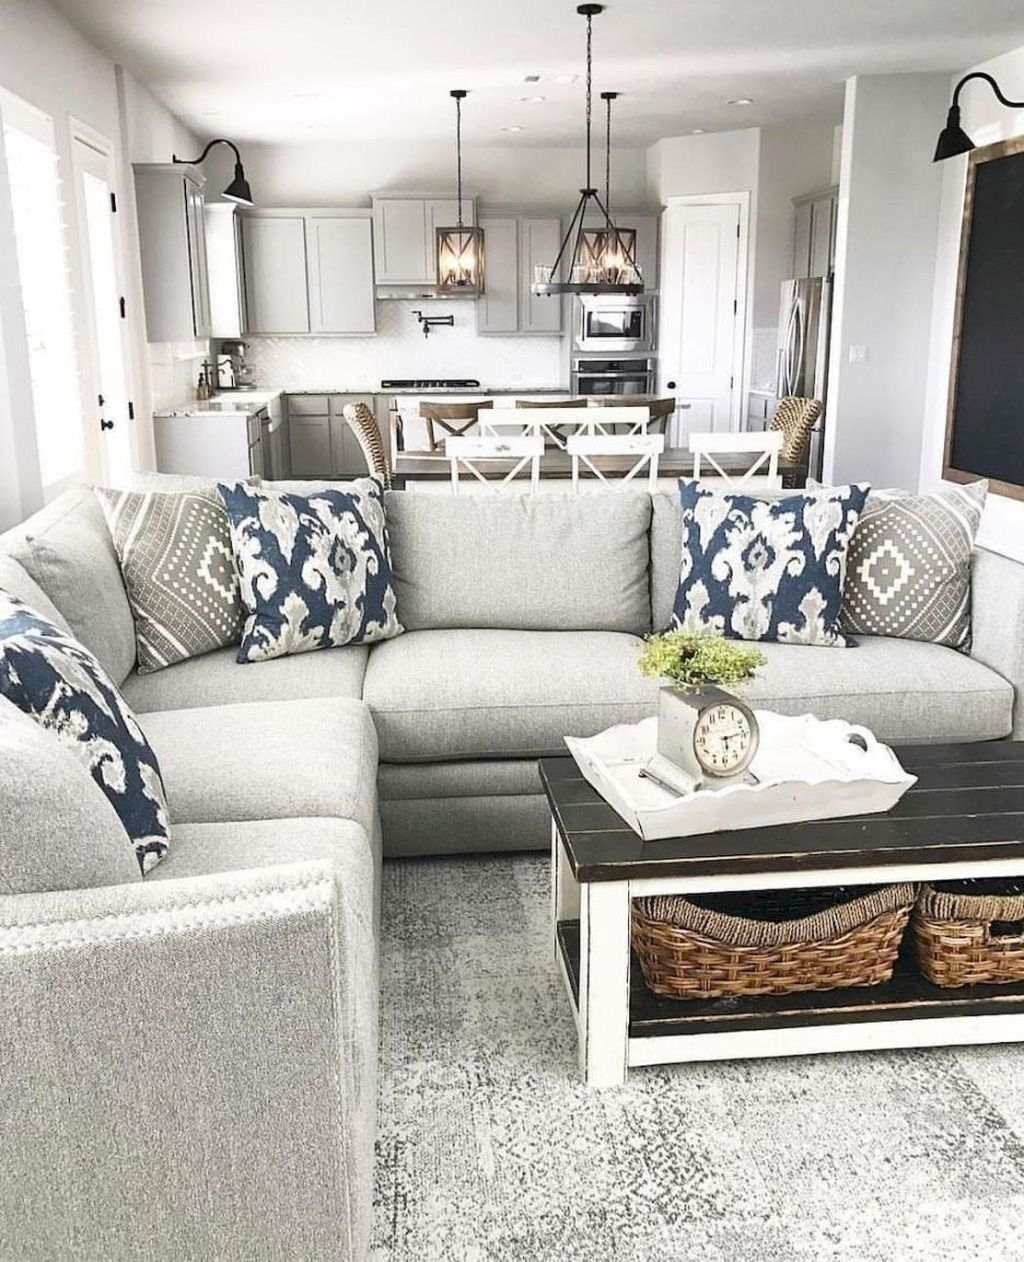 48 inspiring modern farmhouse style decoration ideas for your living rh pinterest com